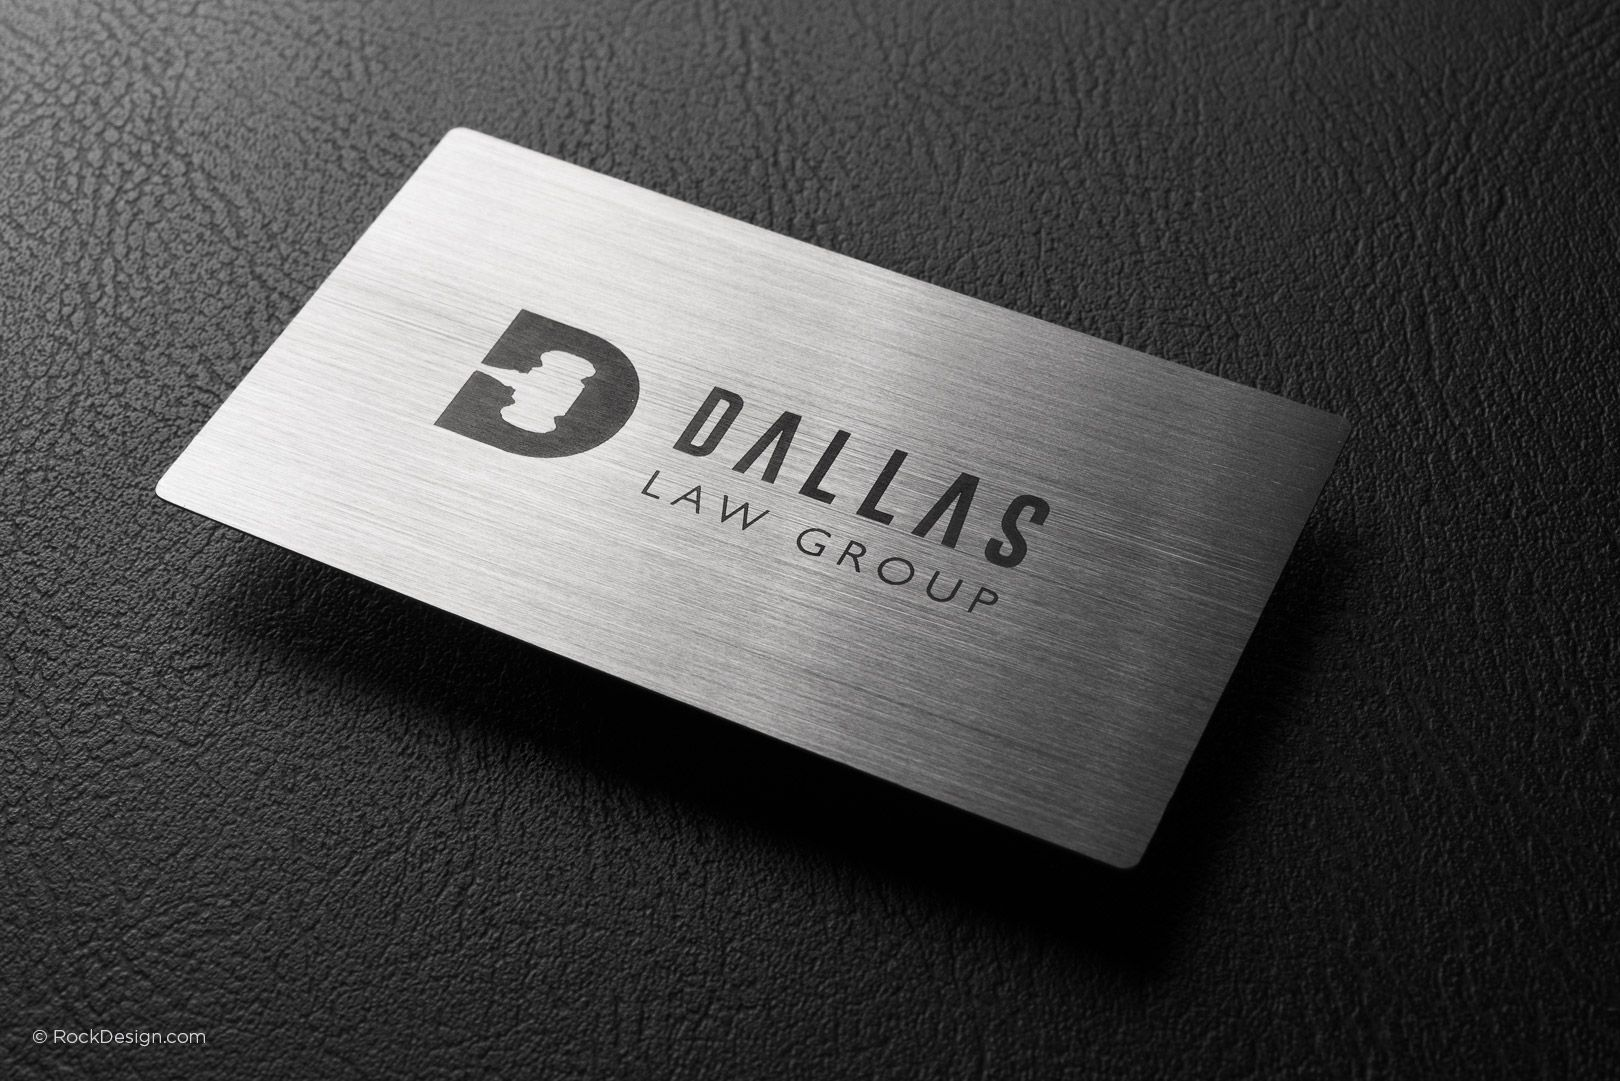 New laser spot color metal business card quick turnaround time new laser spot color metal business card quick turnaround time colourmoves